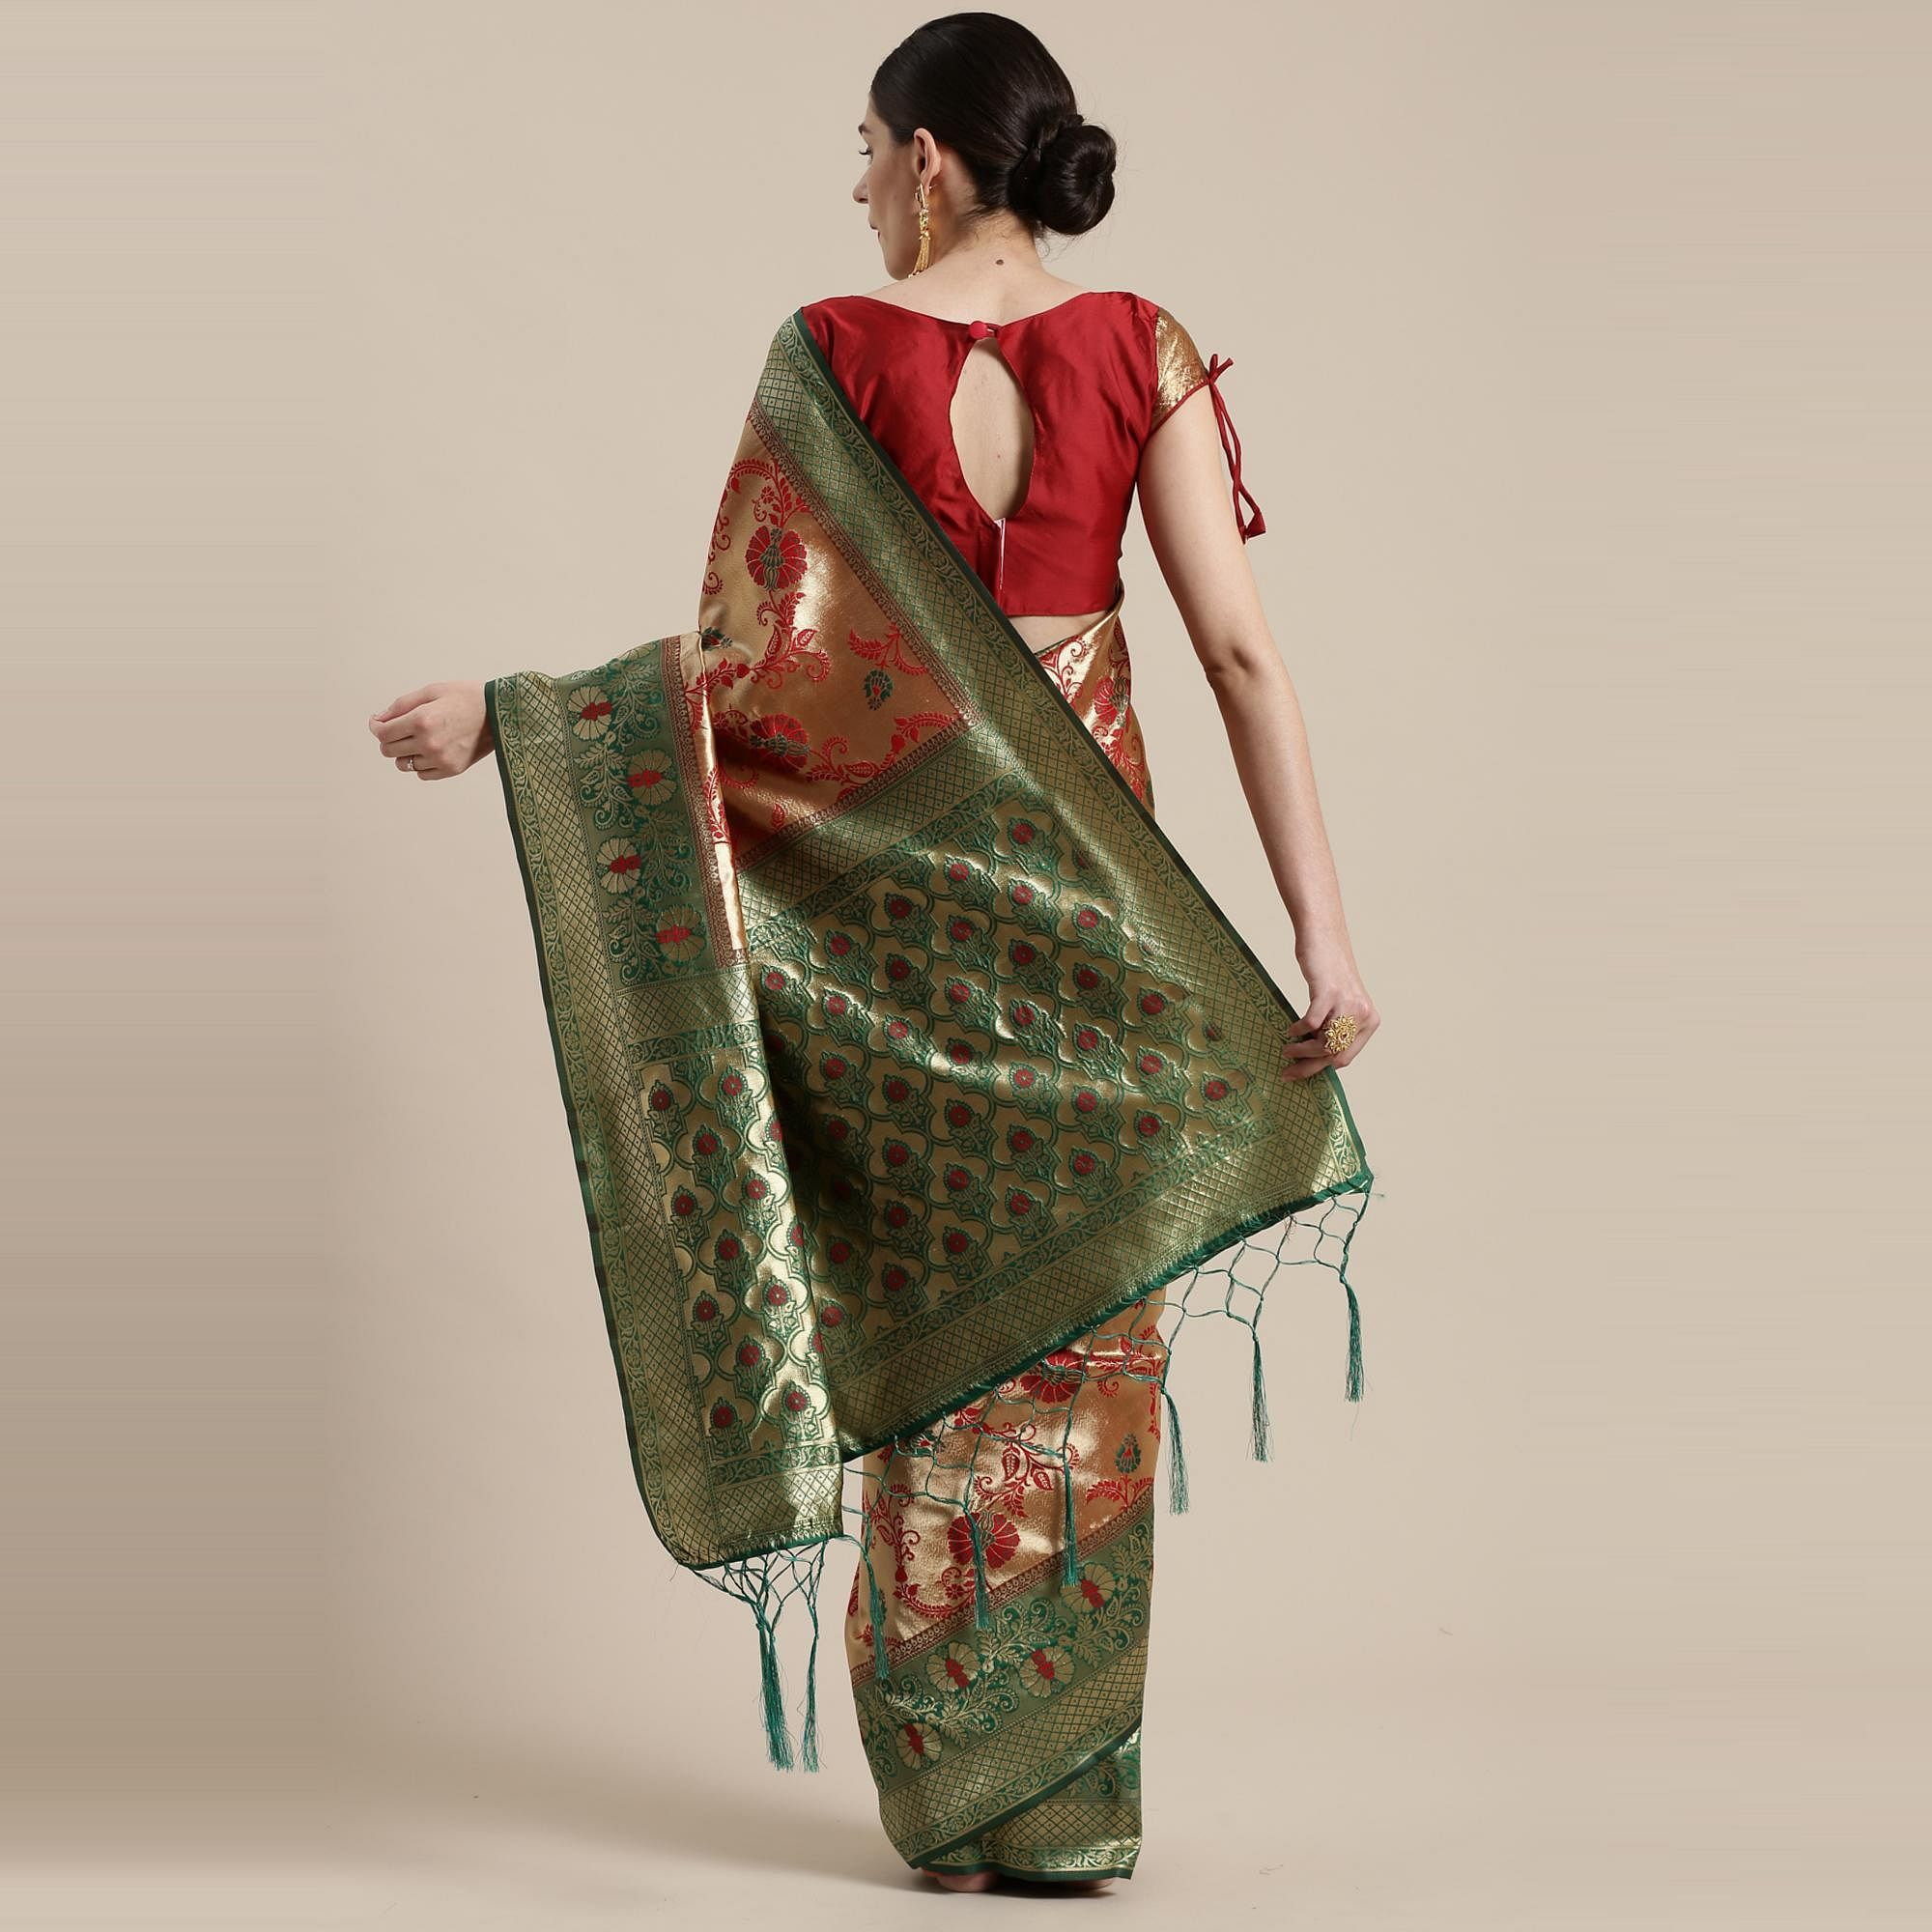 Preferable Gold-Red Colored Festive Wear Woven Silk Belnd Saree With Tassels